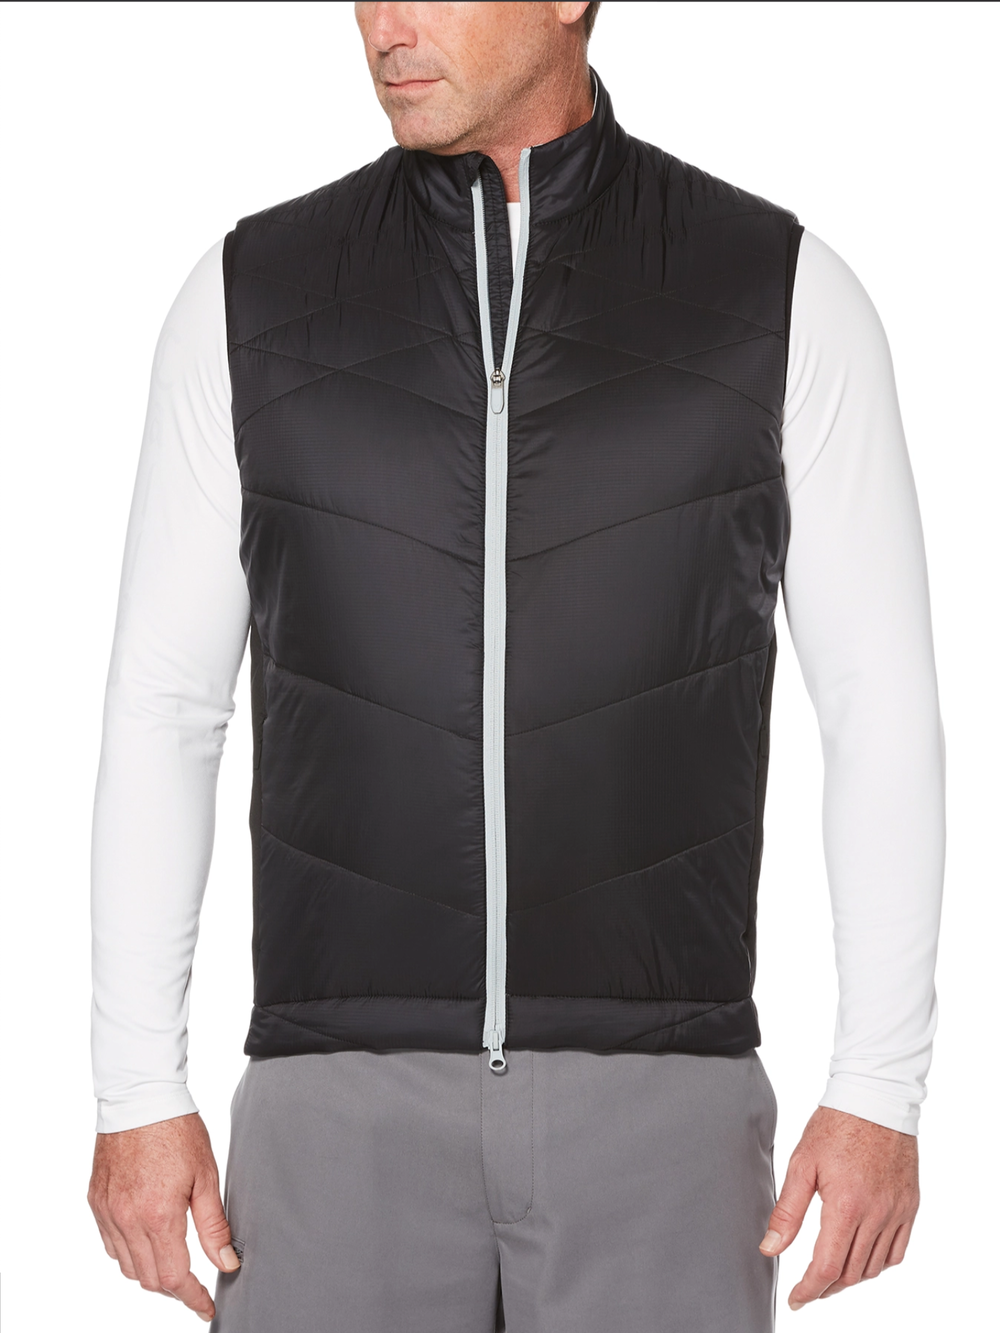 Callaway's Performance Quilted Vest